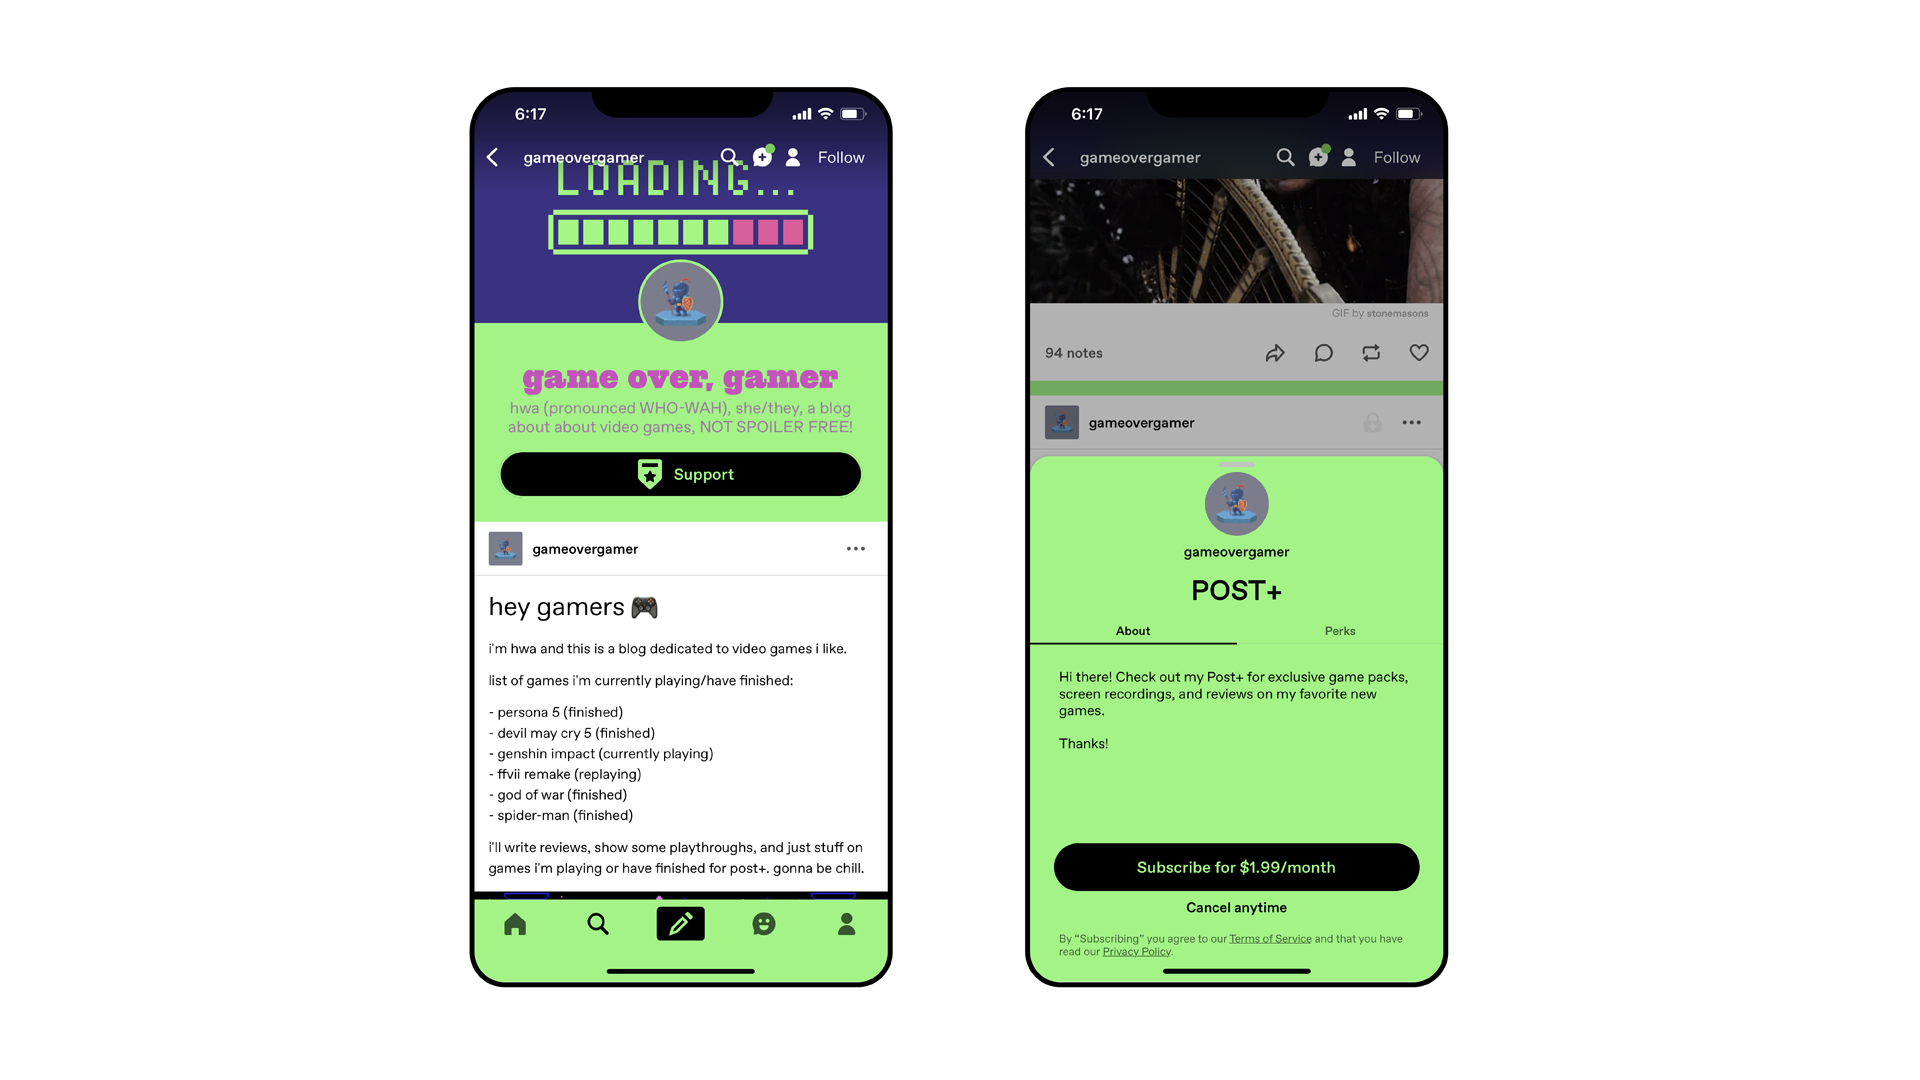 """Two Tumblr app screenshots of a blog titled """"game over, gamer"""". The first shows an introductory post with a list of games and examples of content like reviews and playthroughs. The second shows a Post Plus subscription page that says """"subscribe for $1.99/ month, cancel anytime""""."""